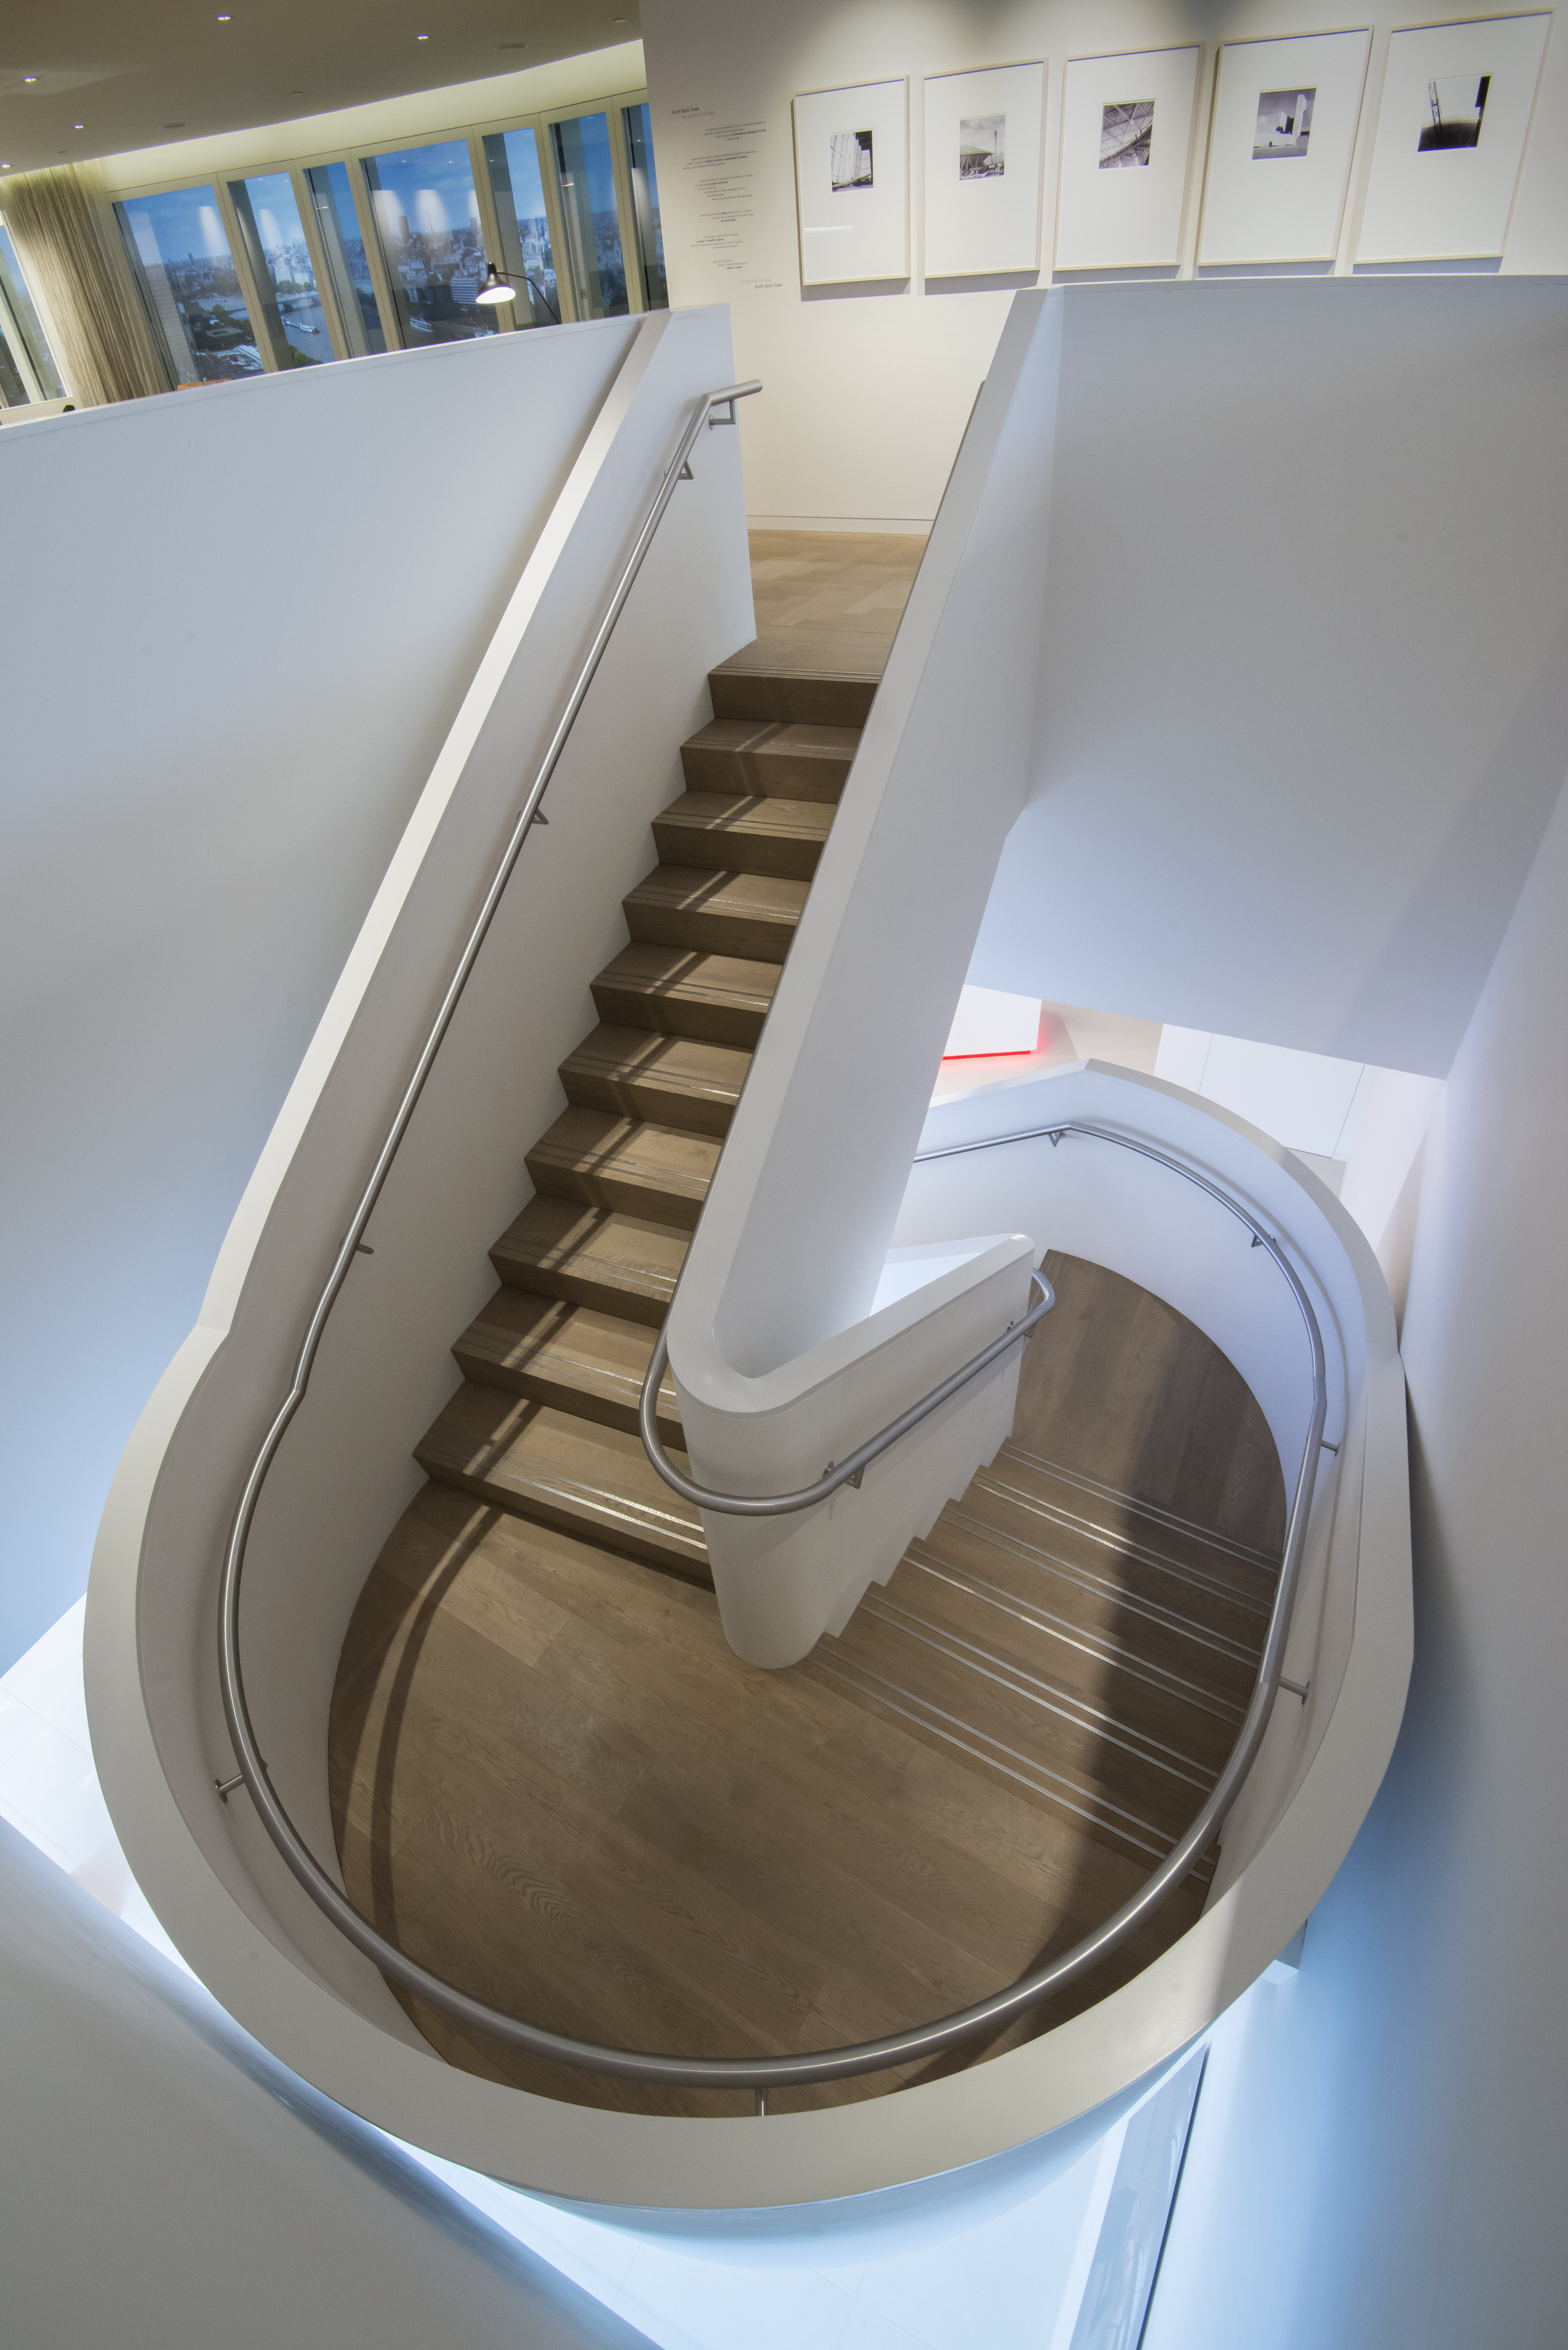 Fumed Oak Flooring clad to spiral stair case with polished metal grips